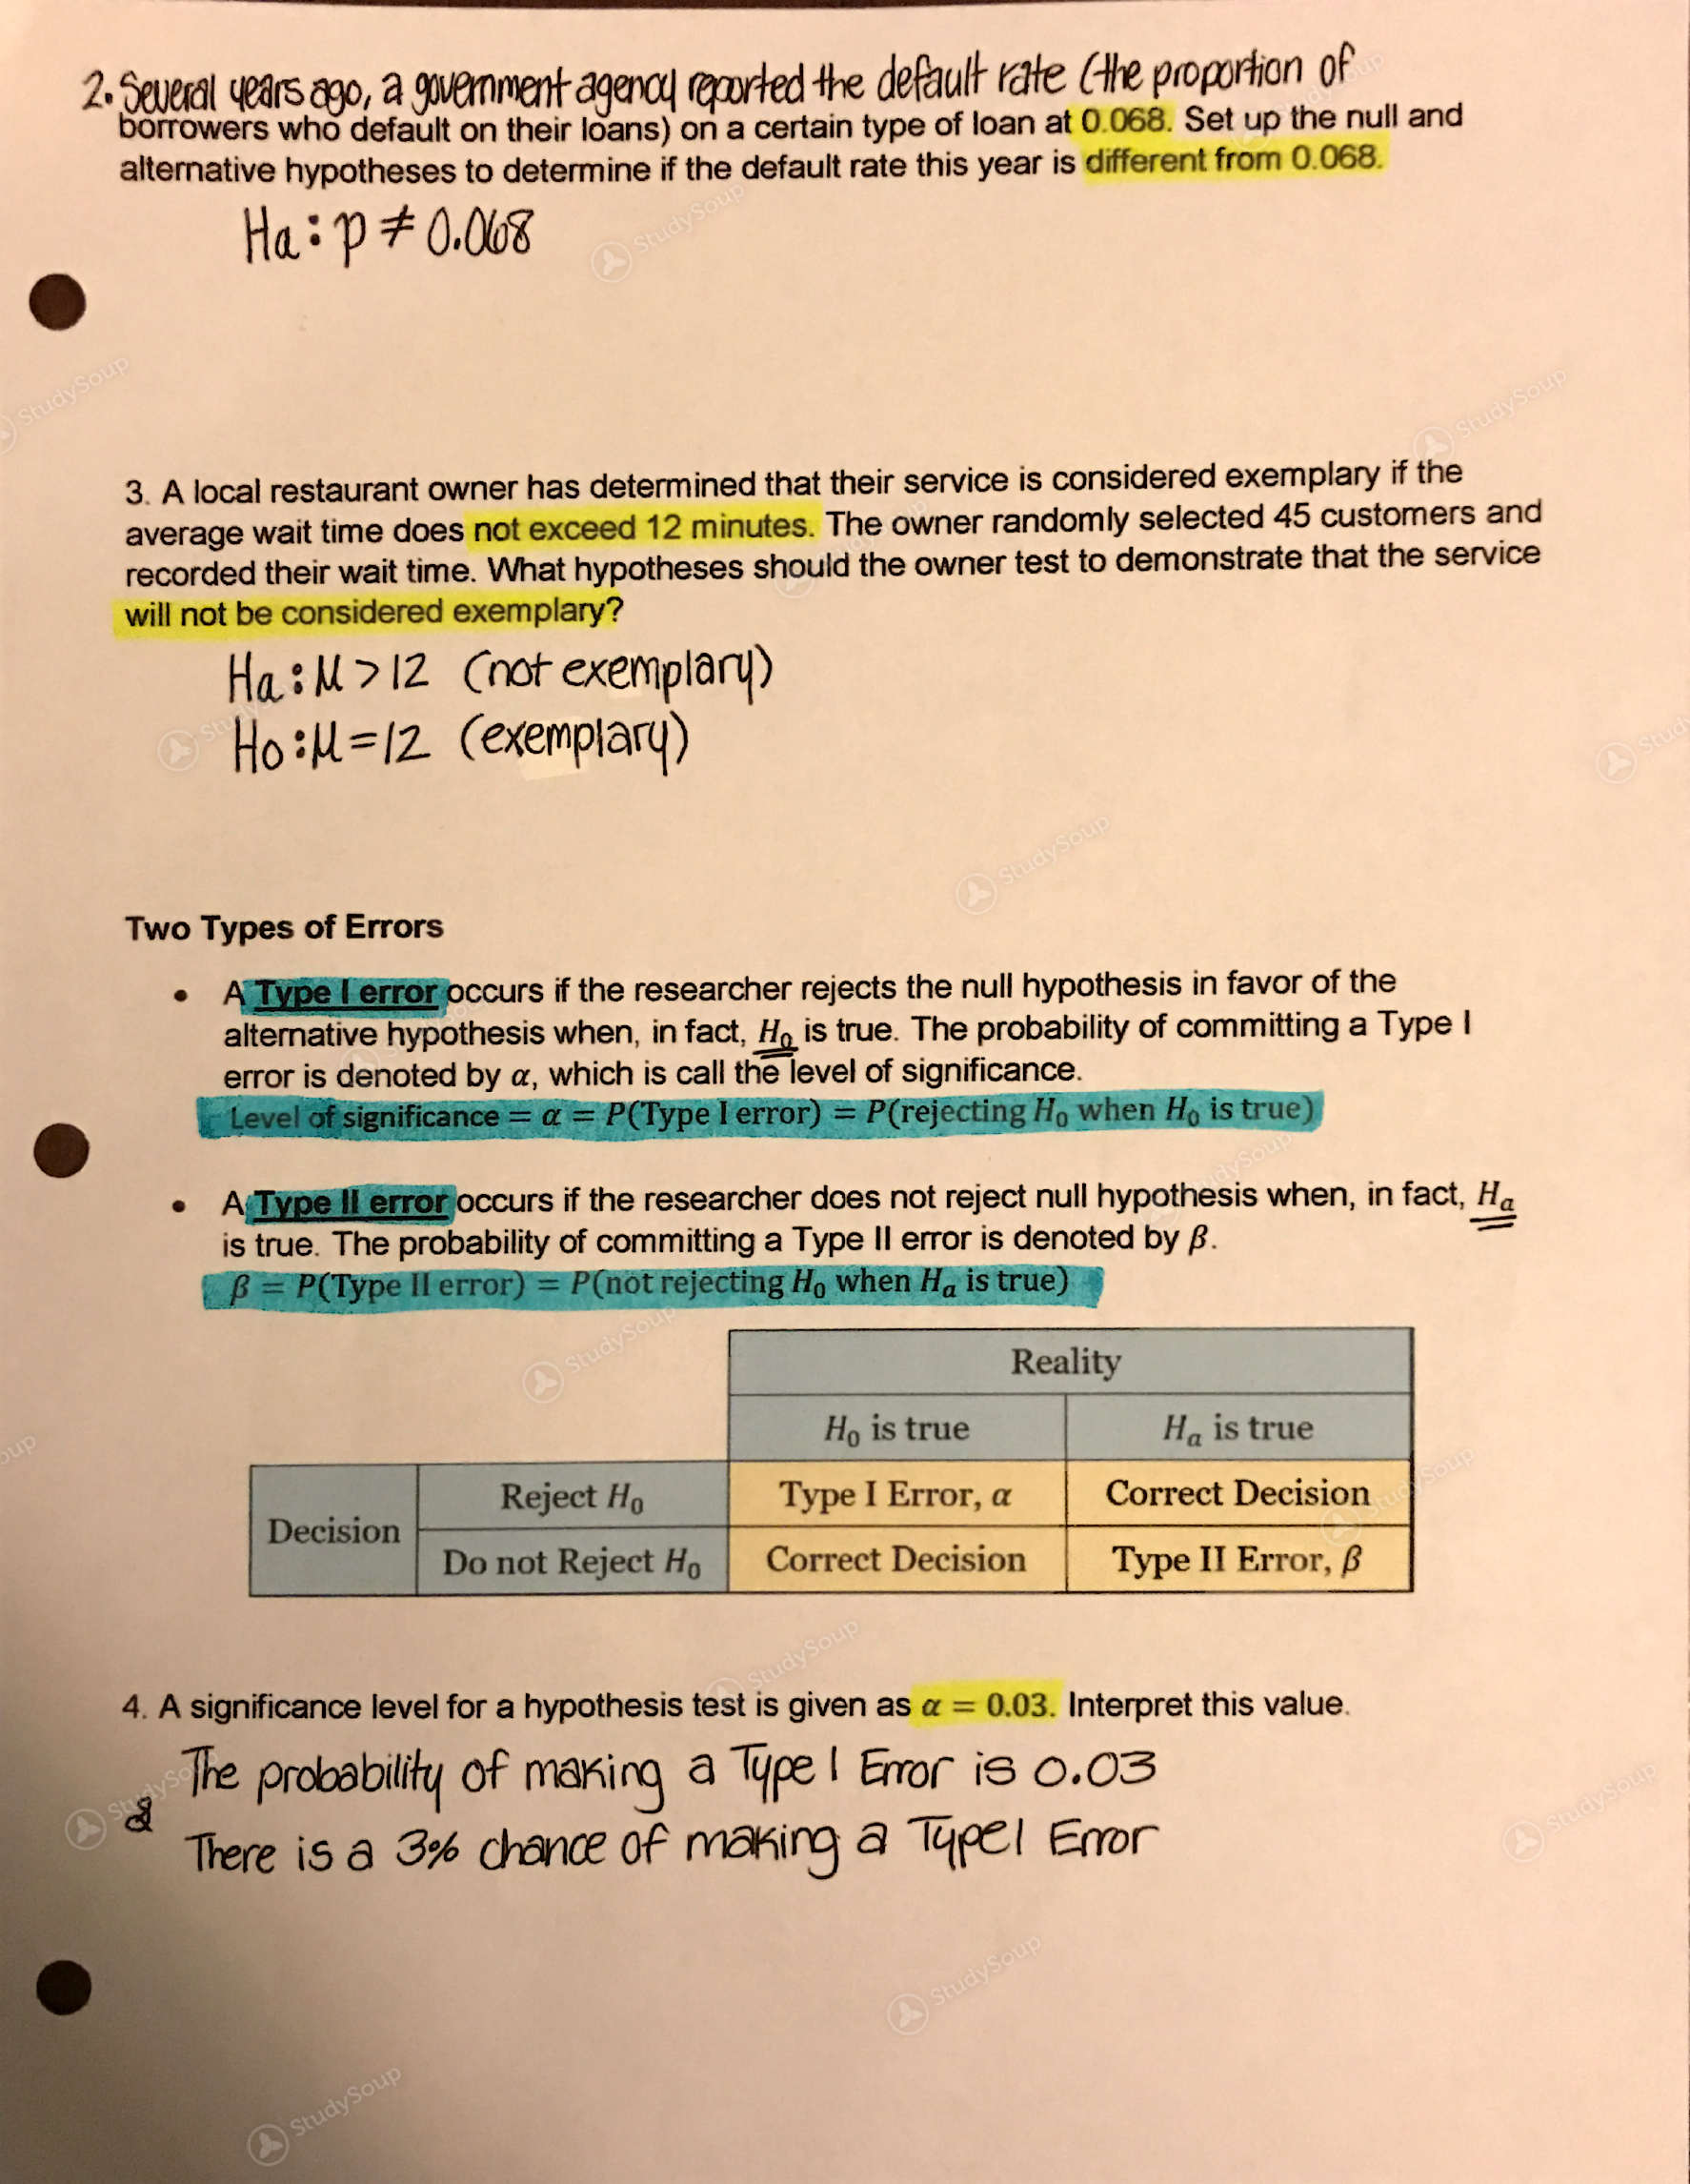 OleMiss - MATH 115 (Elementary Statistics) - Class Notes